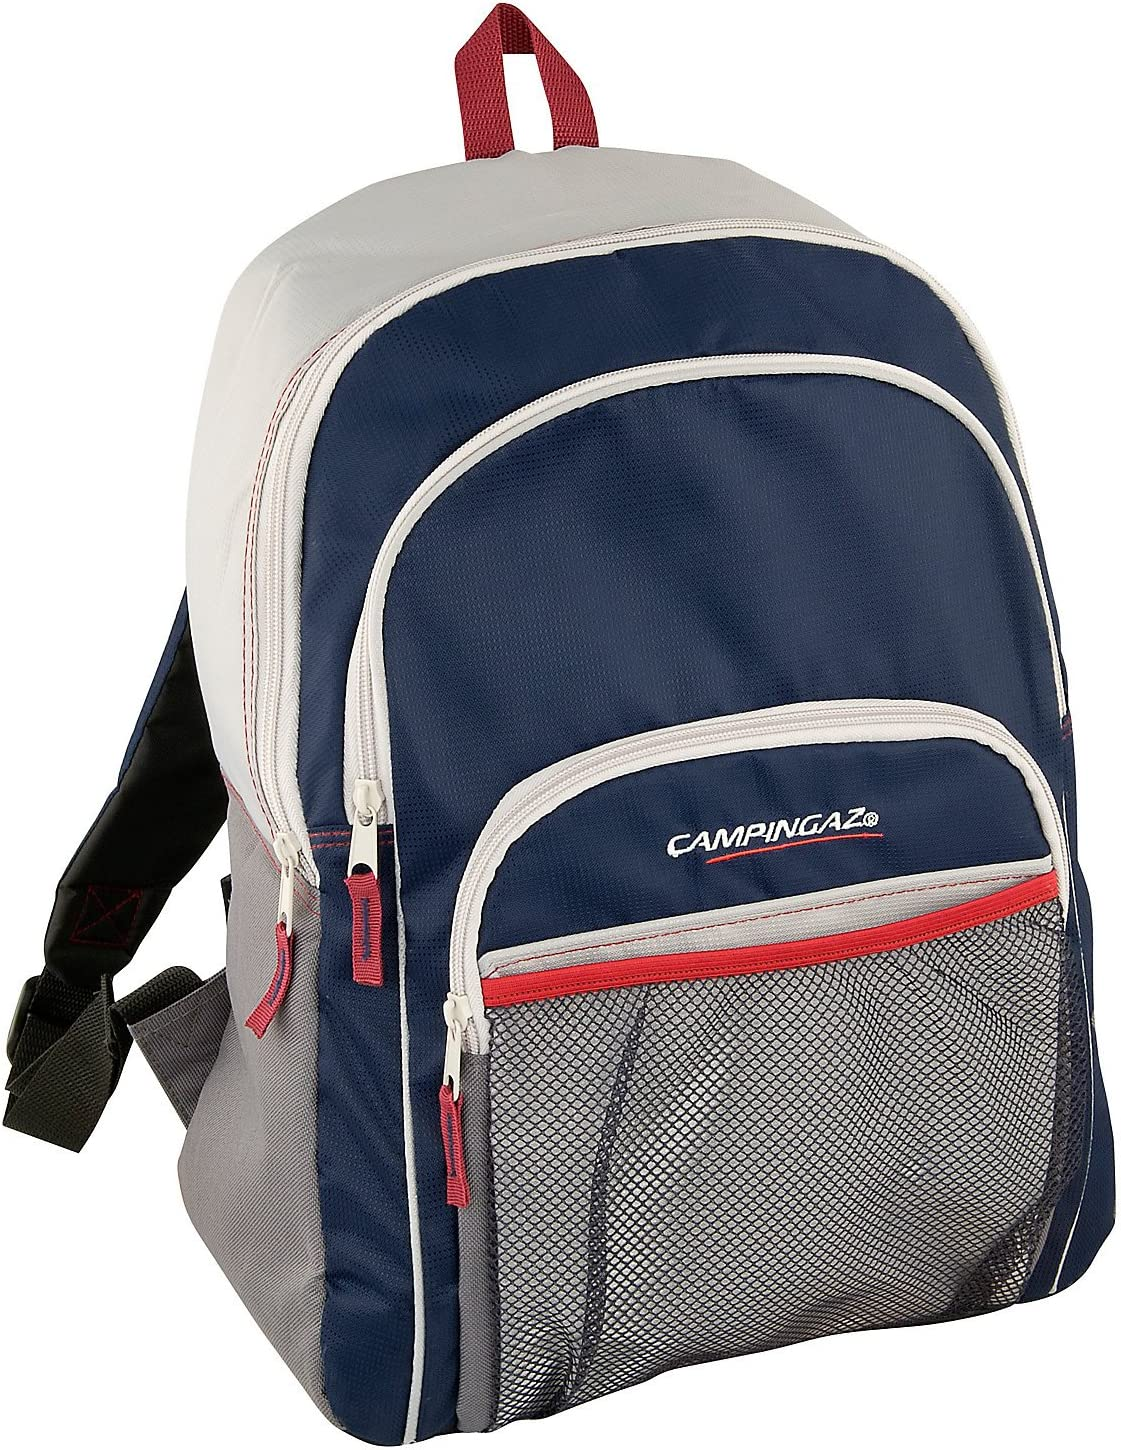 Campingaz Backpack